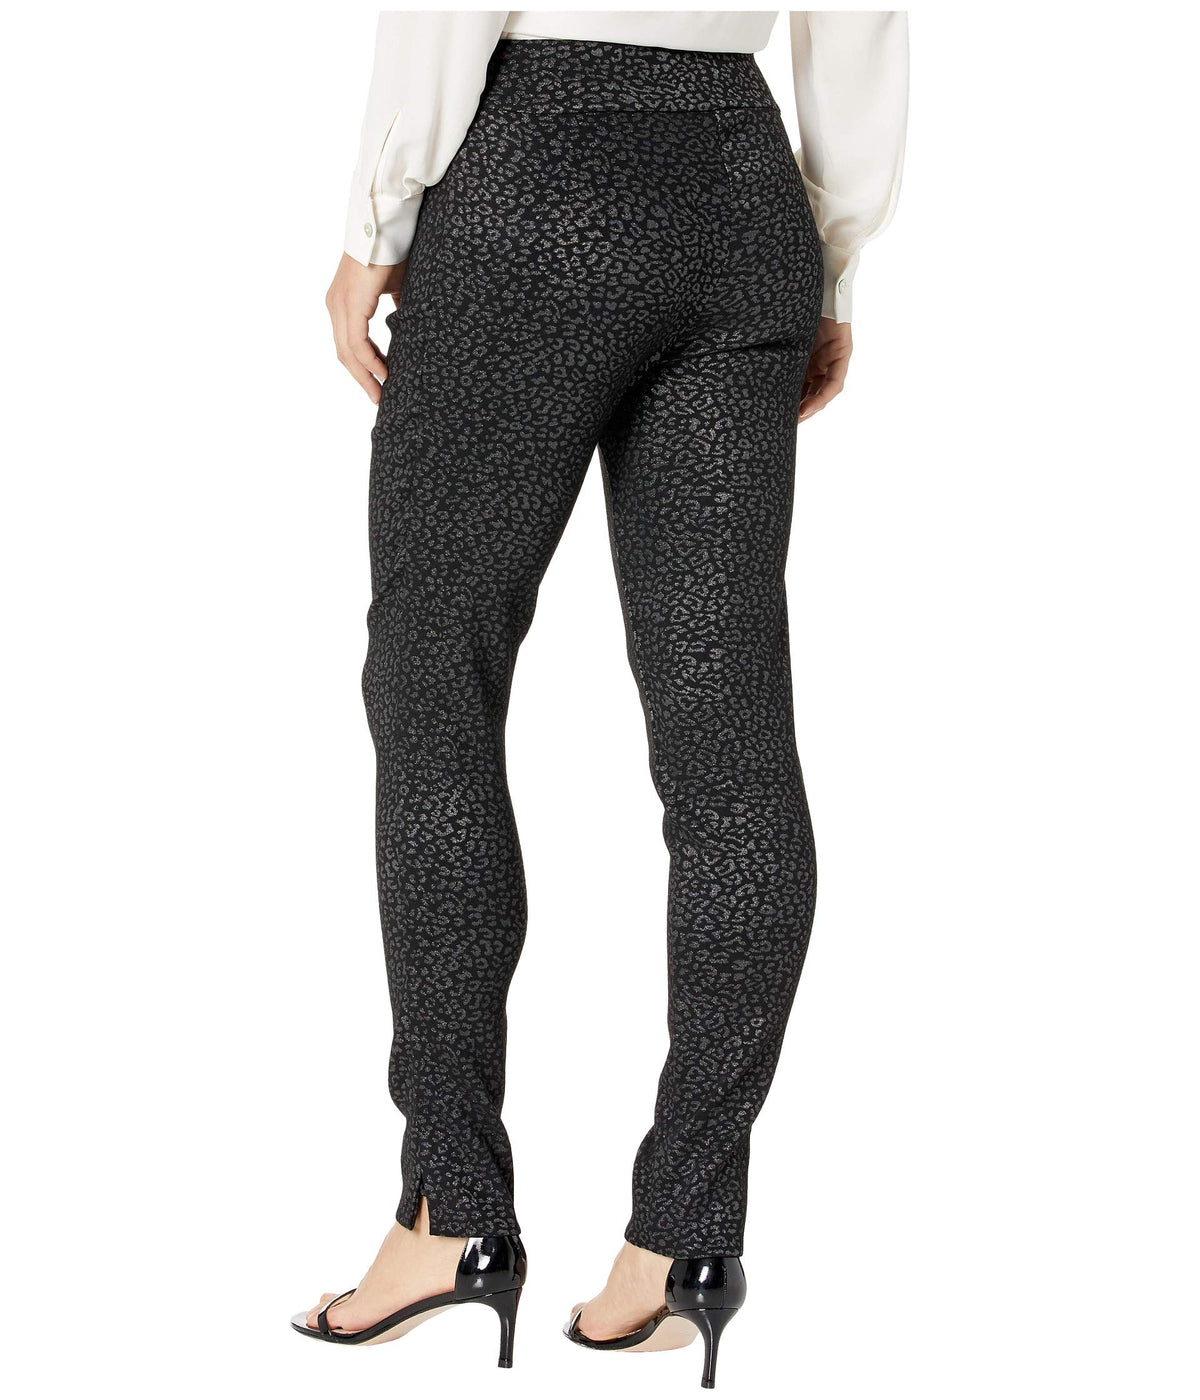 Lurex Cheetah Print Pull-On Pants